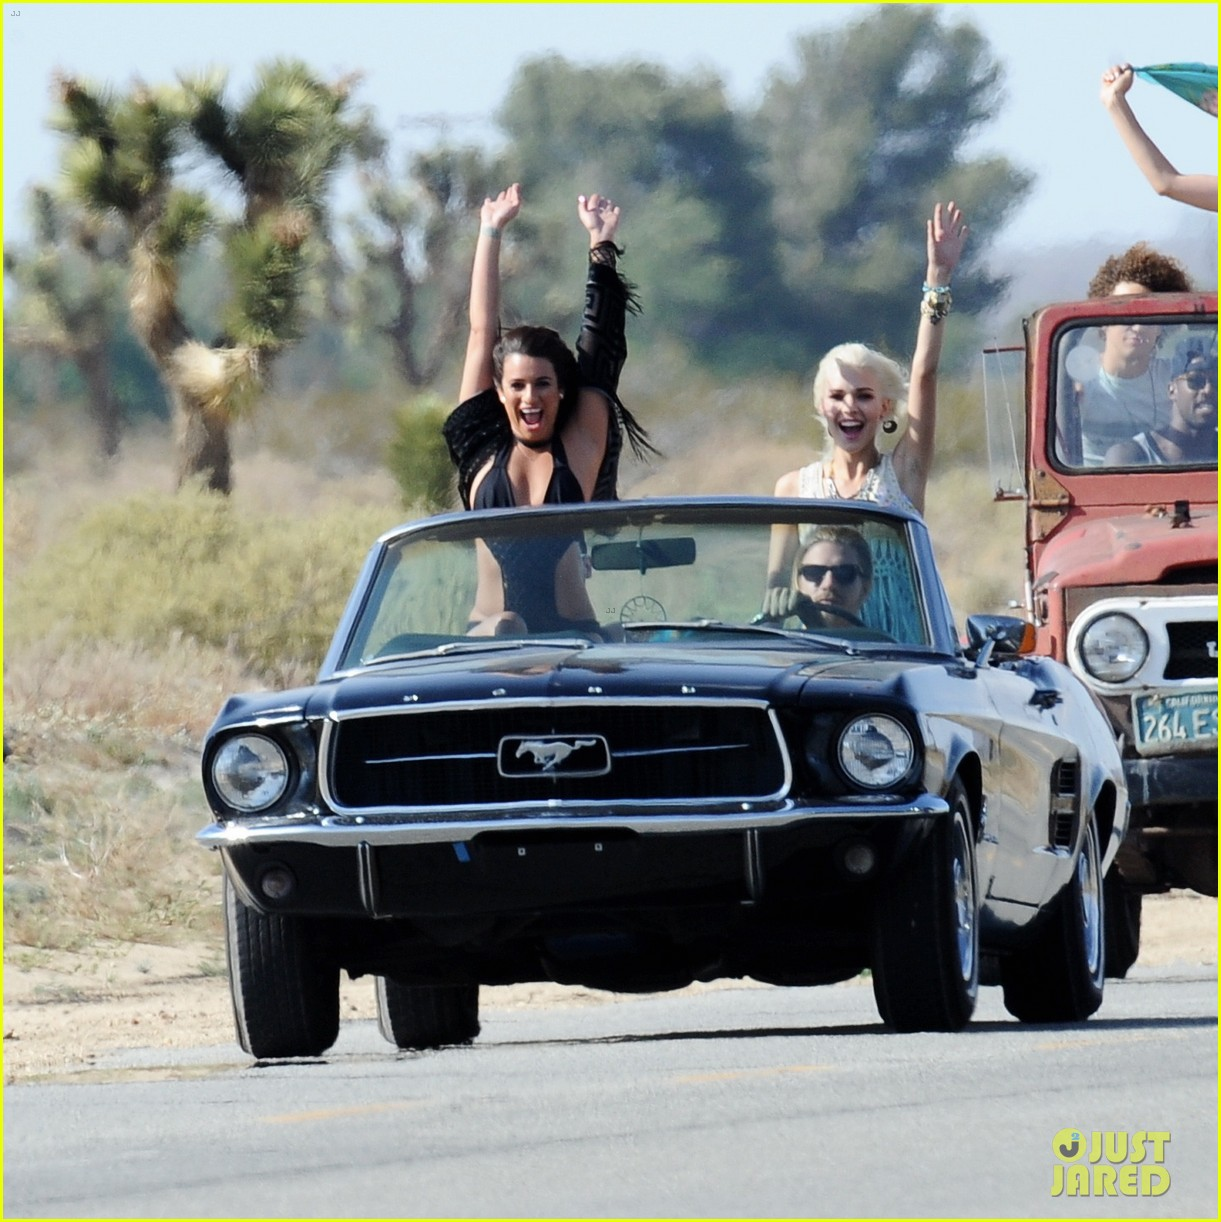 lea michele bikini on my way music video shoot 39